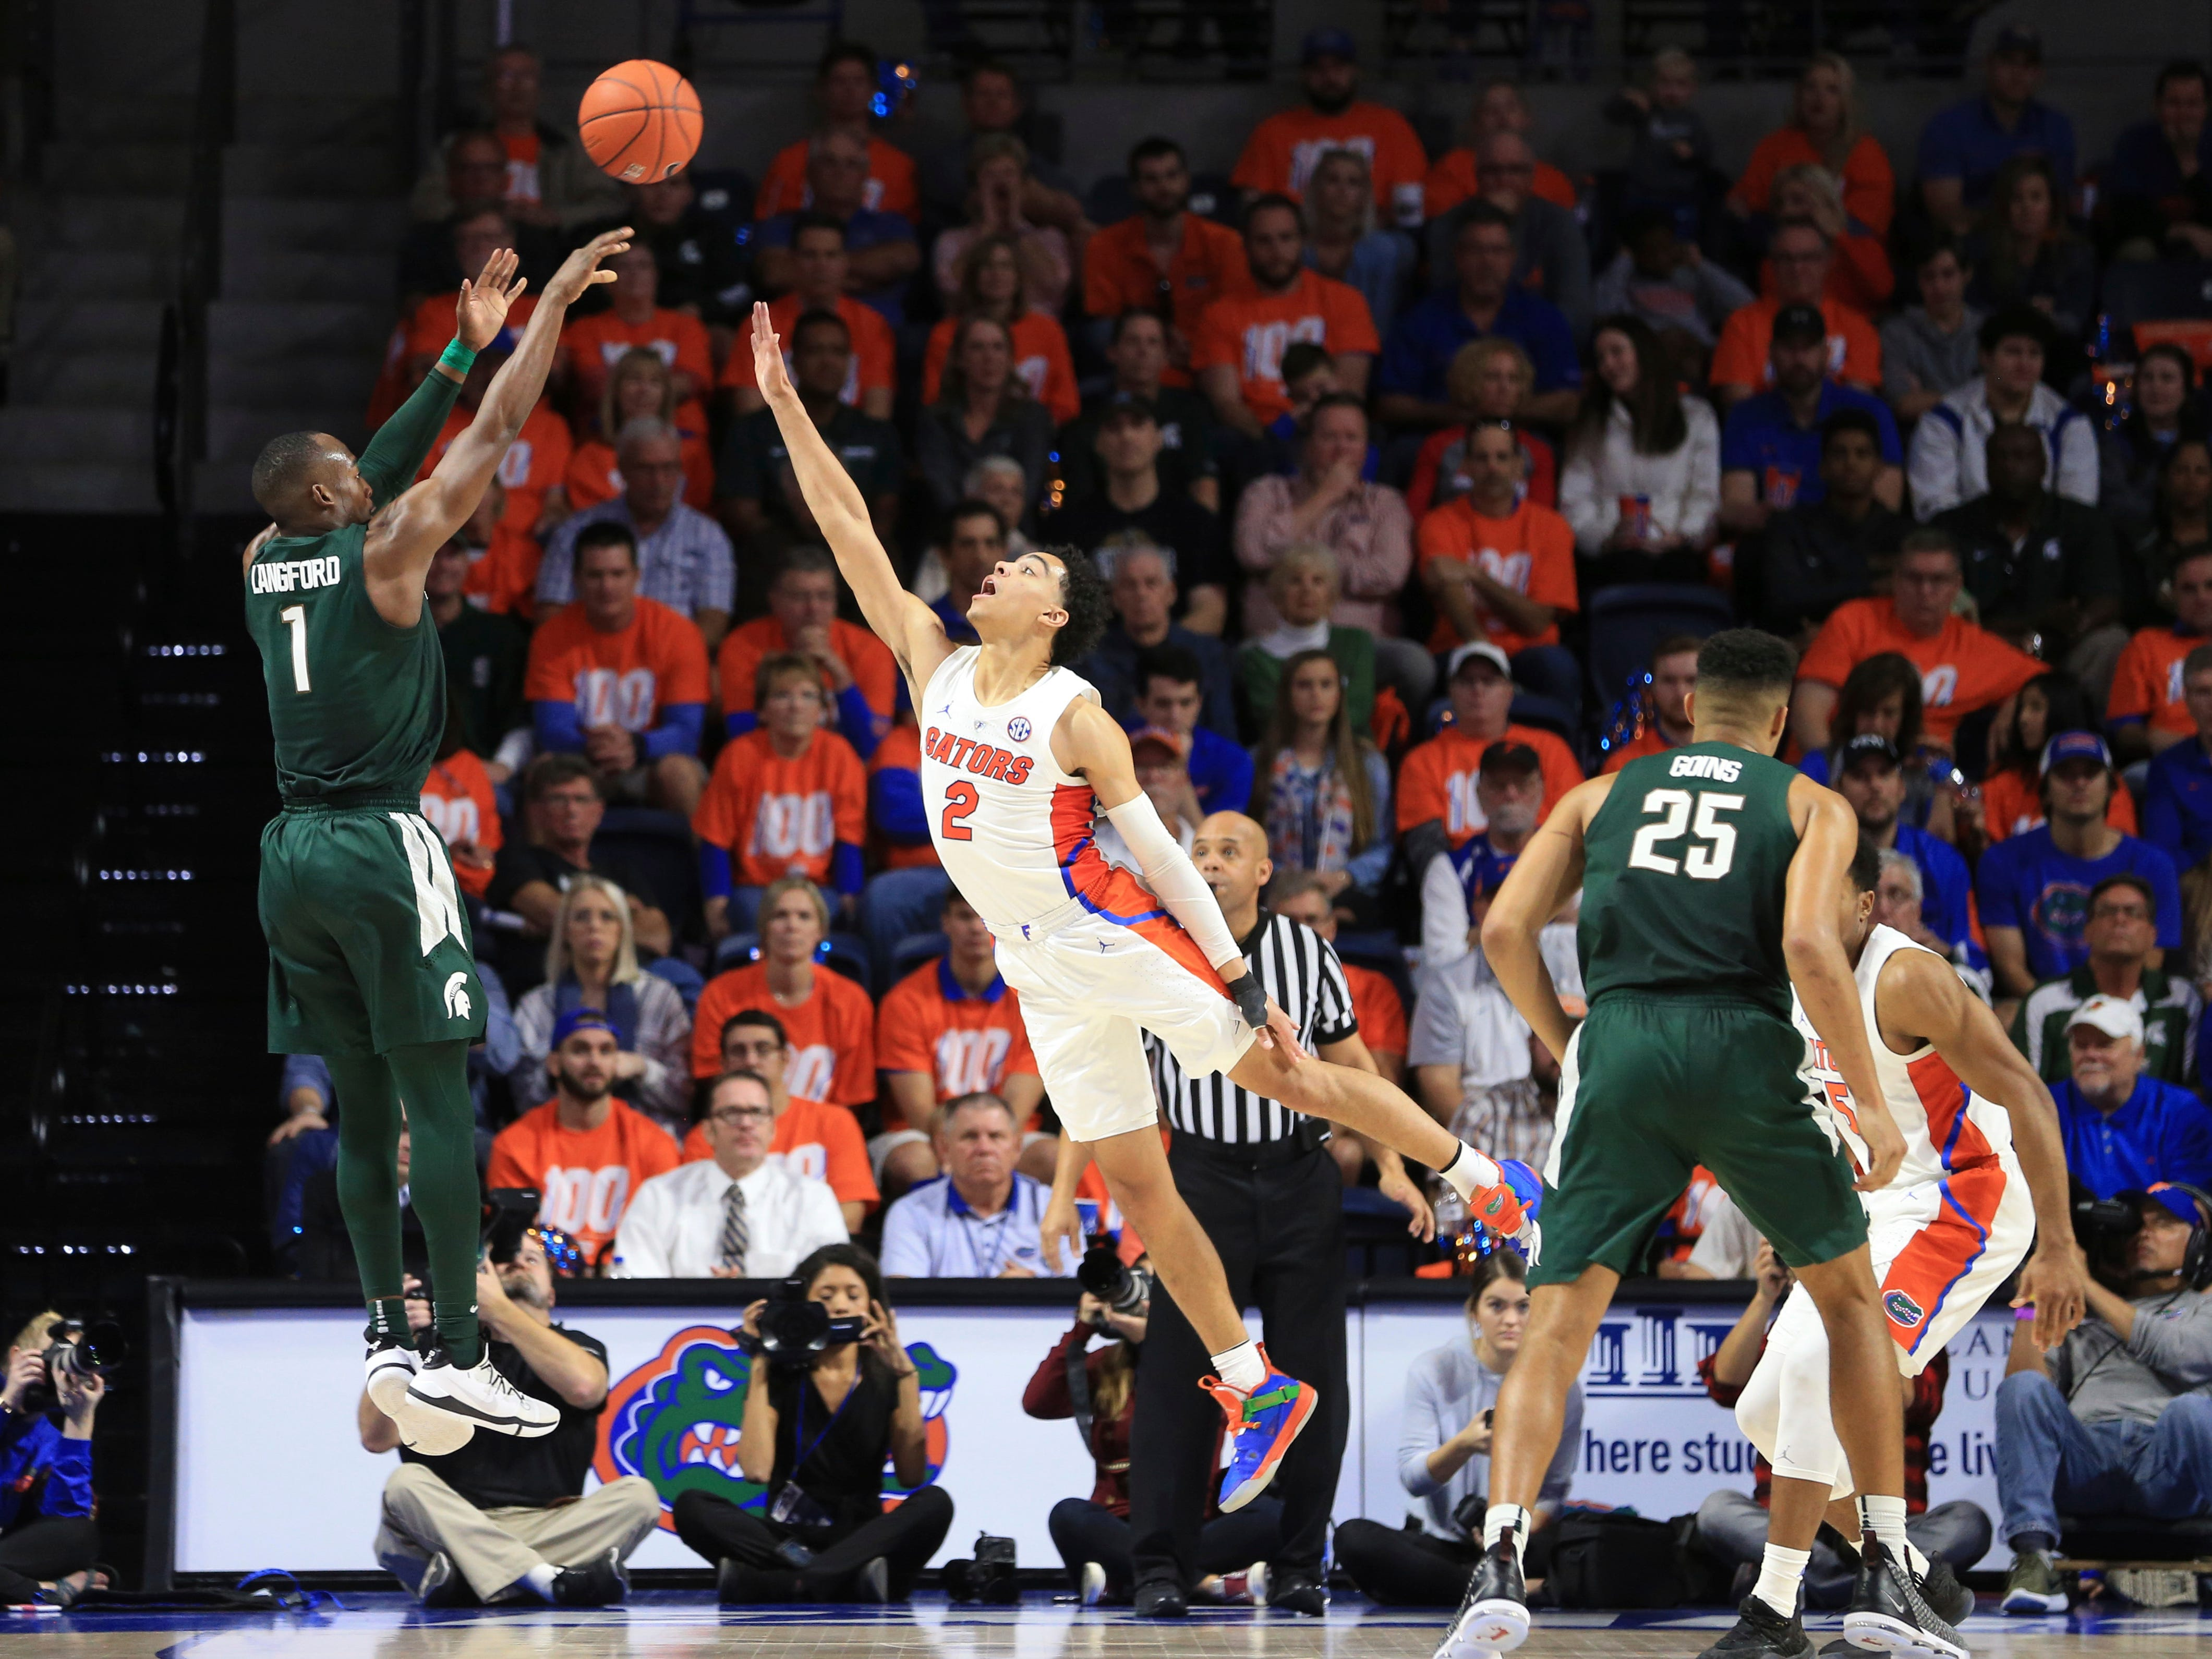 Michigan State guard Joshua Langford (1) makes a shot over Florida guard Andrew Nembhard (2) during the second half.